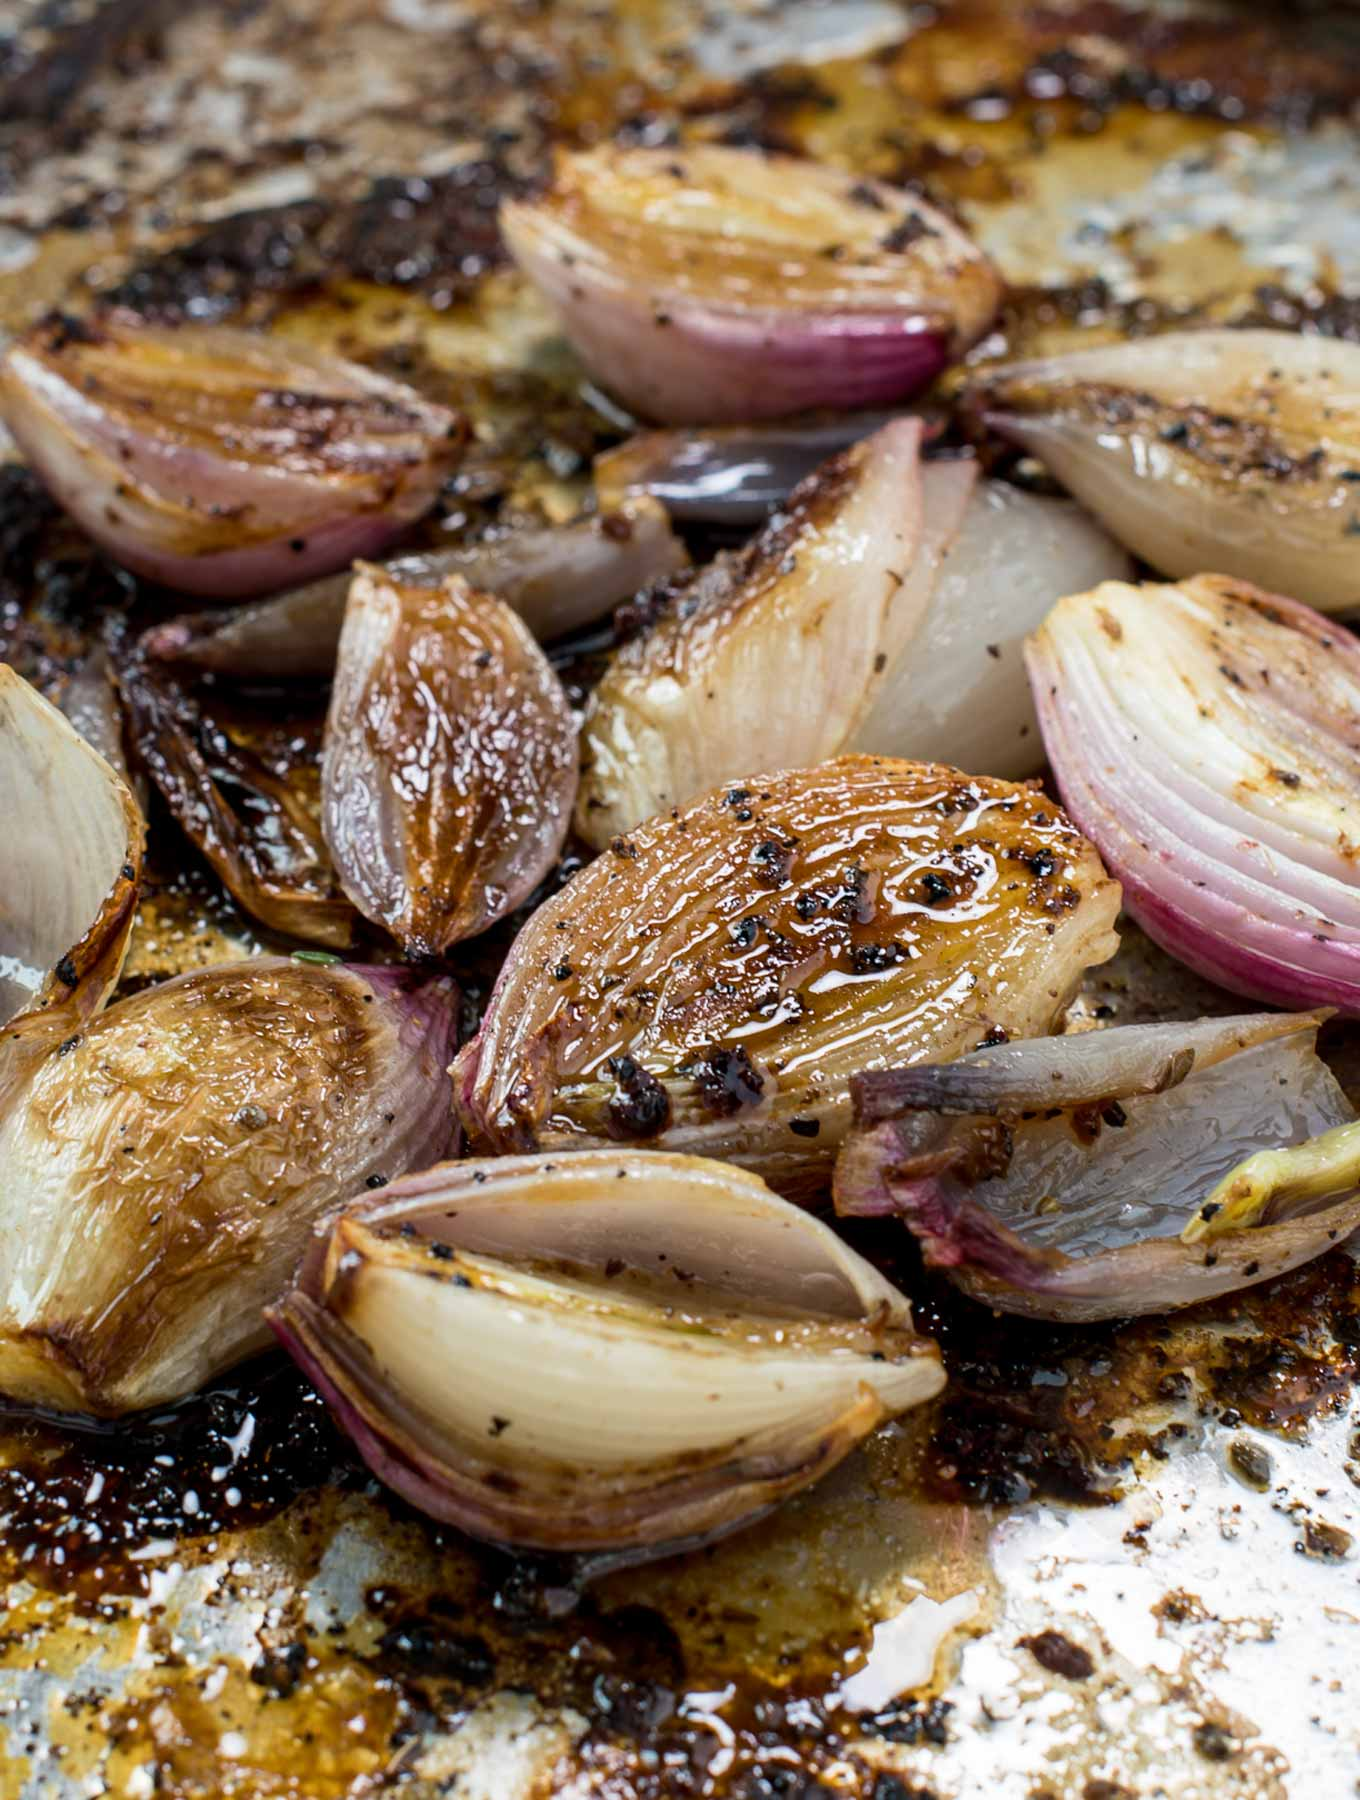 Roasted shallots in a roasting pan